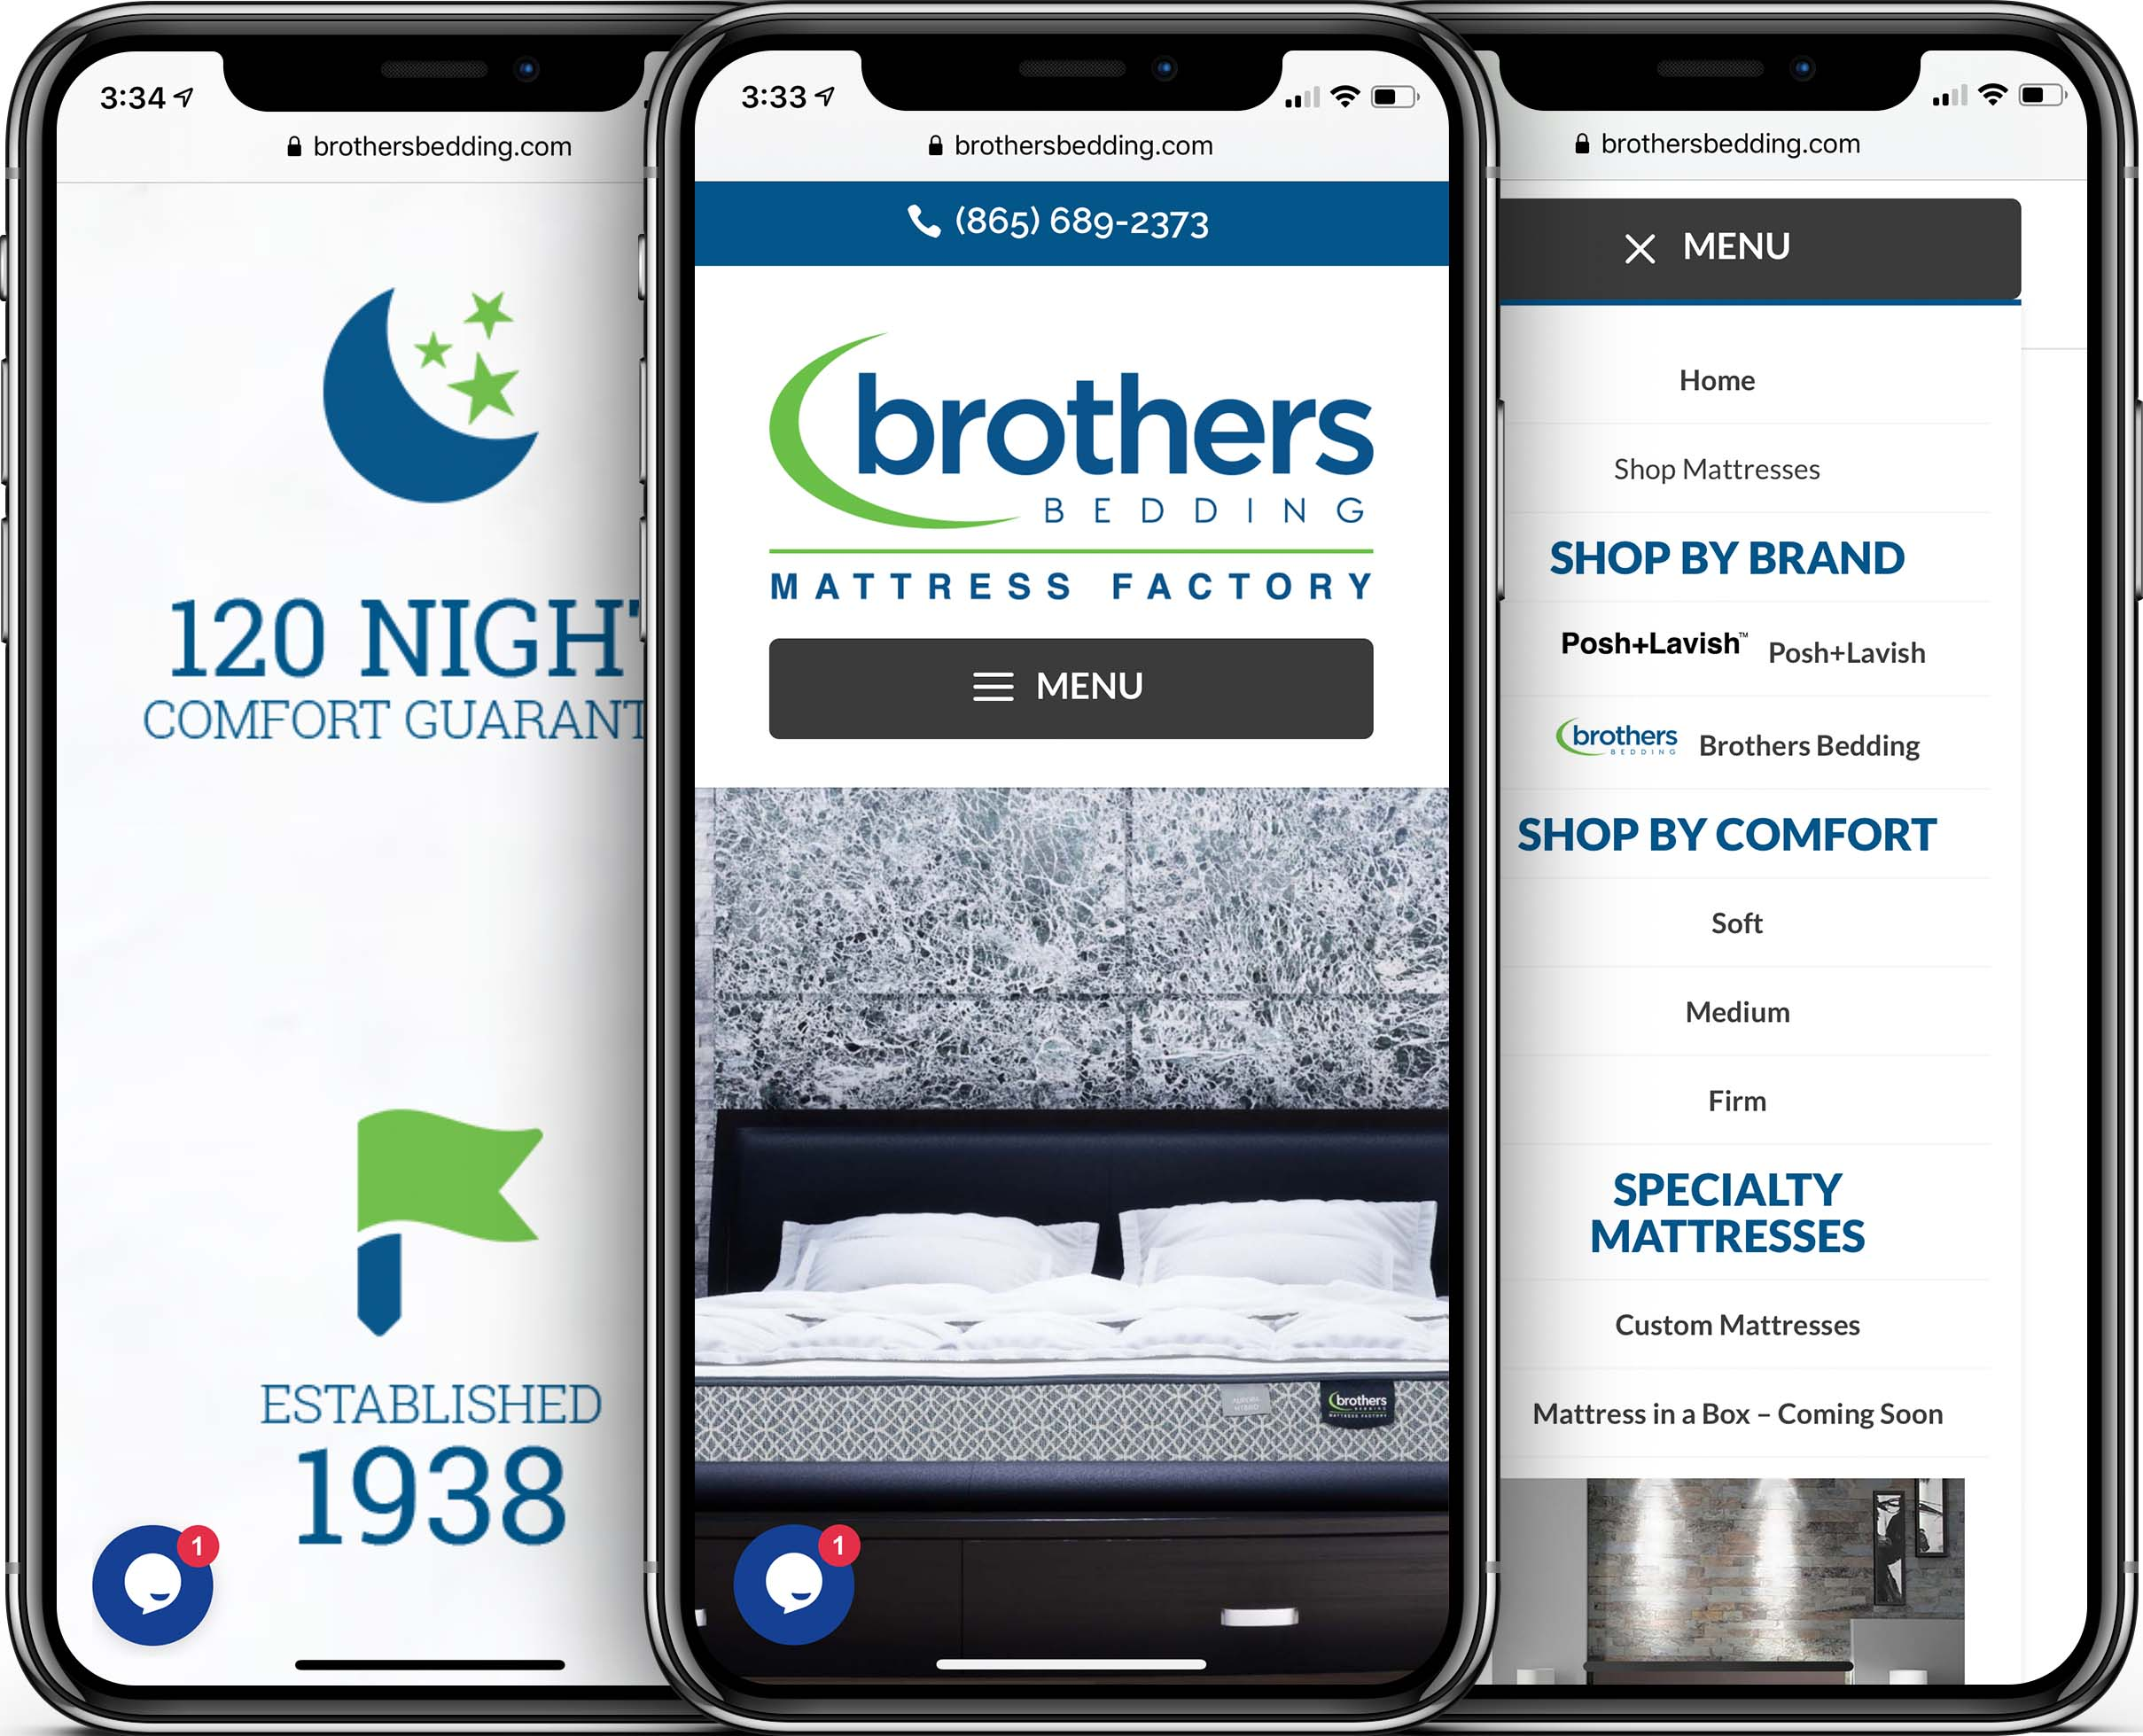 Brothers Bedding Mobile-Friendly Web Design